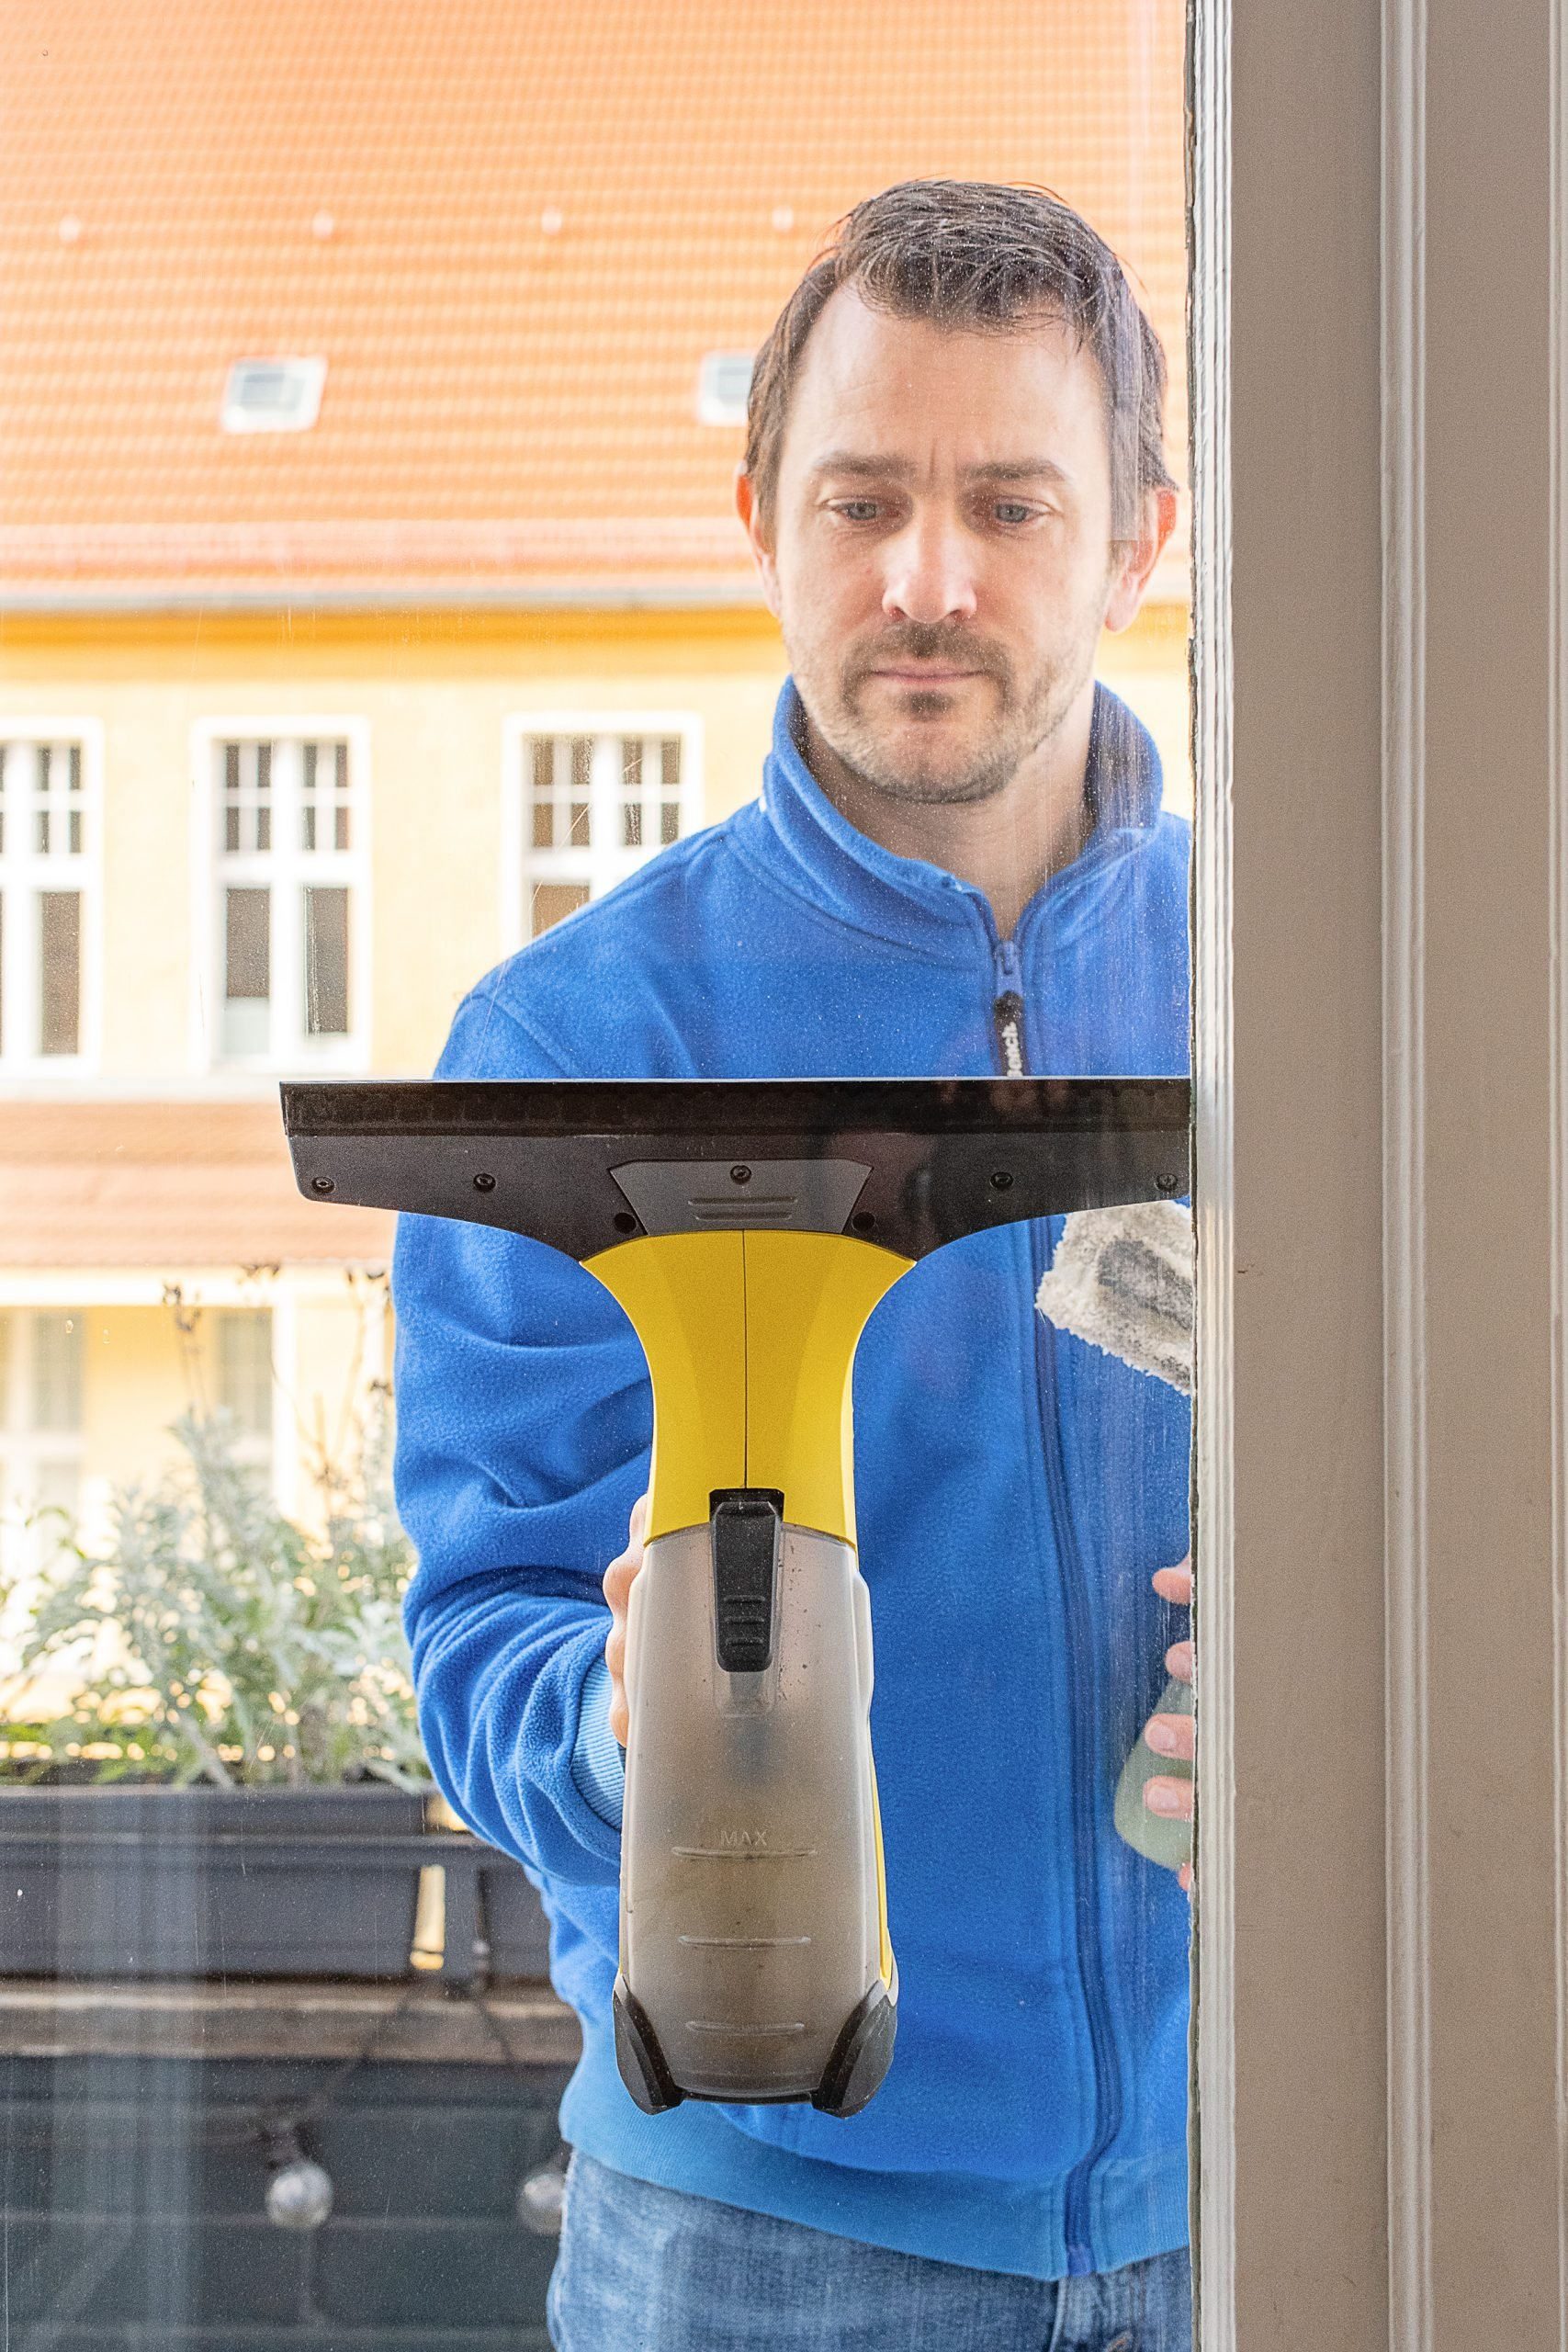 Karcher Window Vac Review | What We Really Think Of Our Vac After 5 Years Of Use! | Little House On The Corner